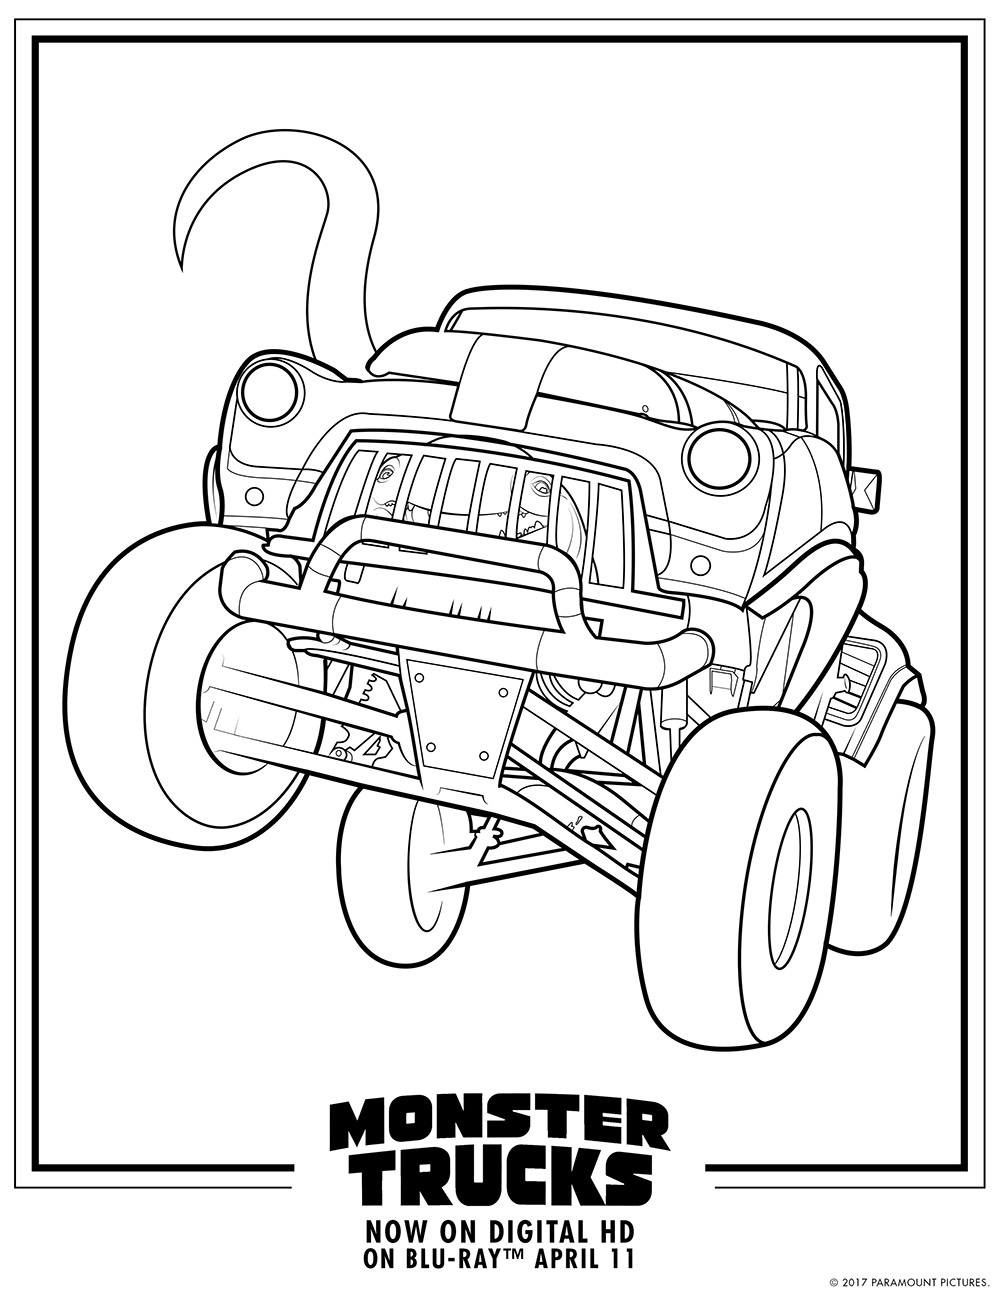 This is an image of Canny Monster Truck Printable Coloring Pages